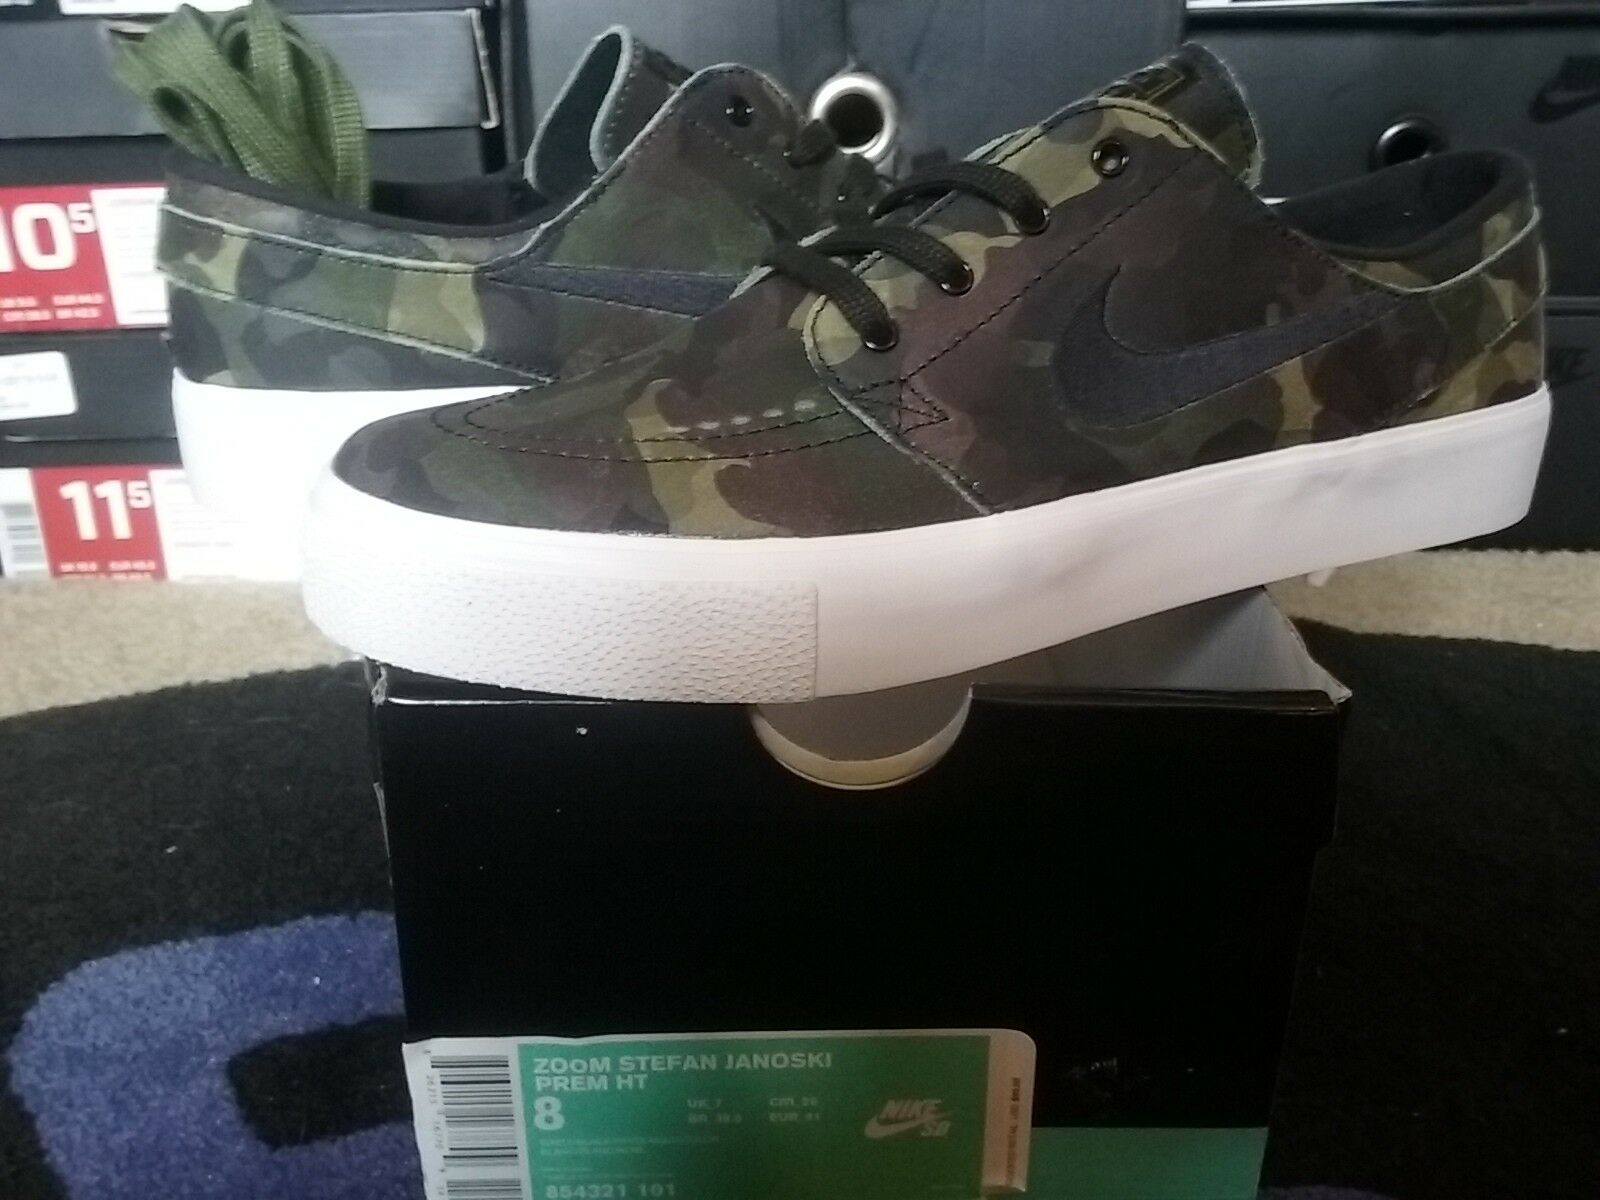 The most popular shoes for men and women Nike Air Zoom Stefan Janoski SB PRM HT Premium Camo White Black Green 854321 101